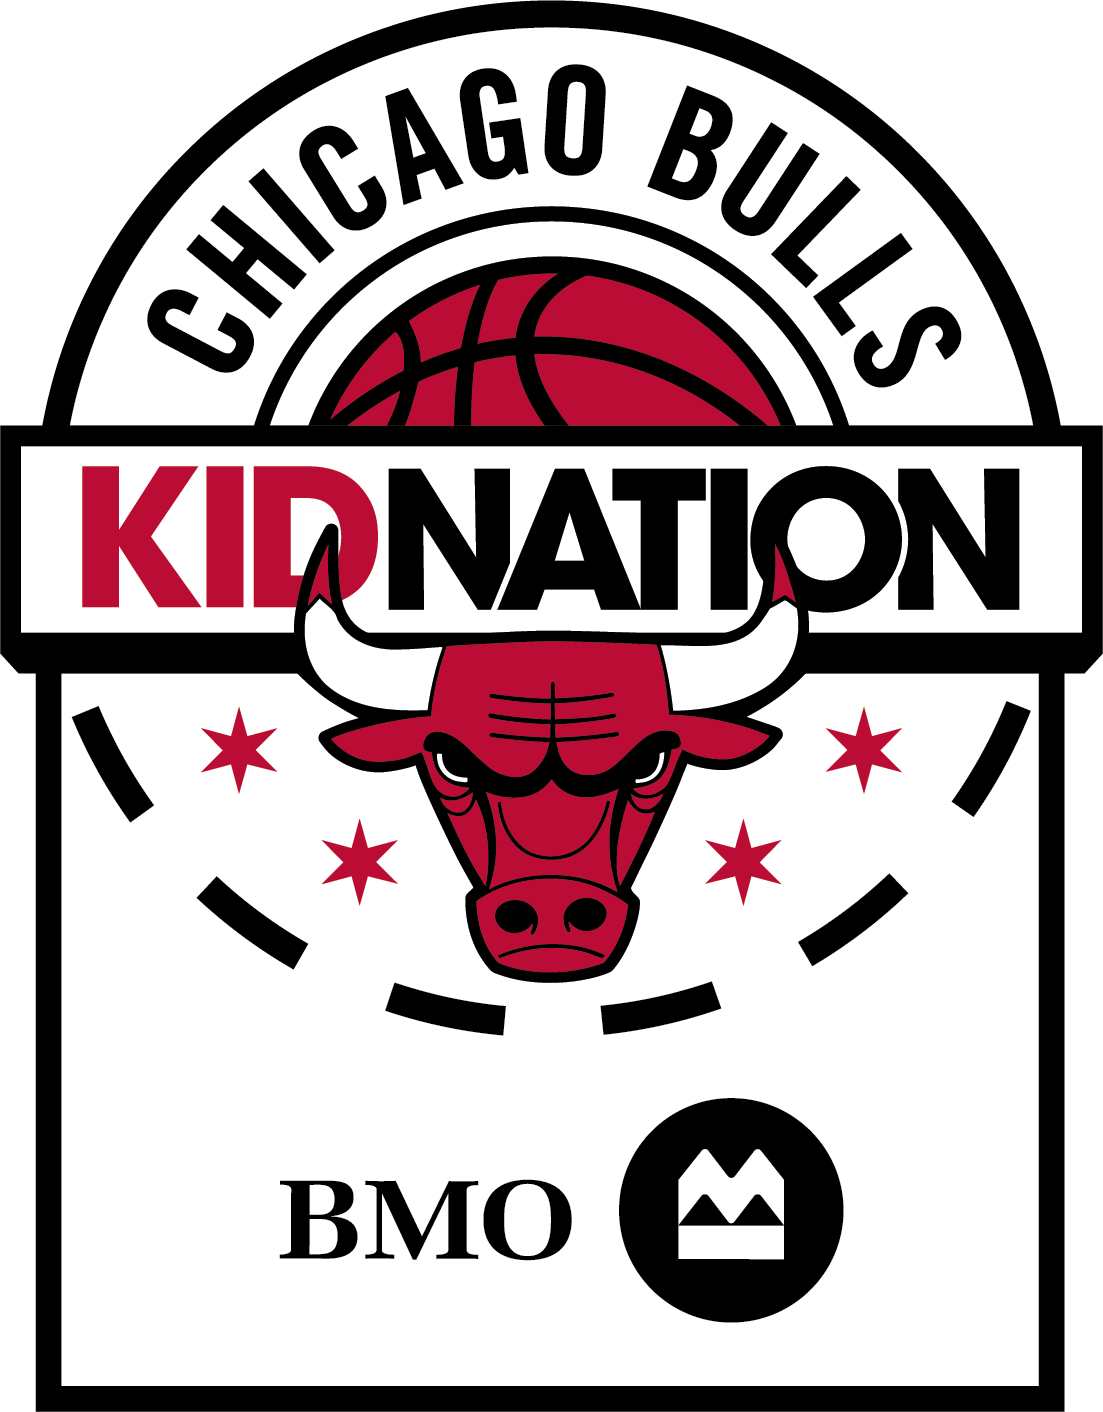 Bulls Kidnation logo